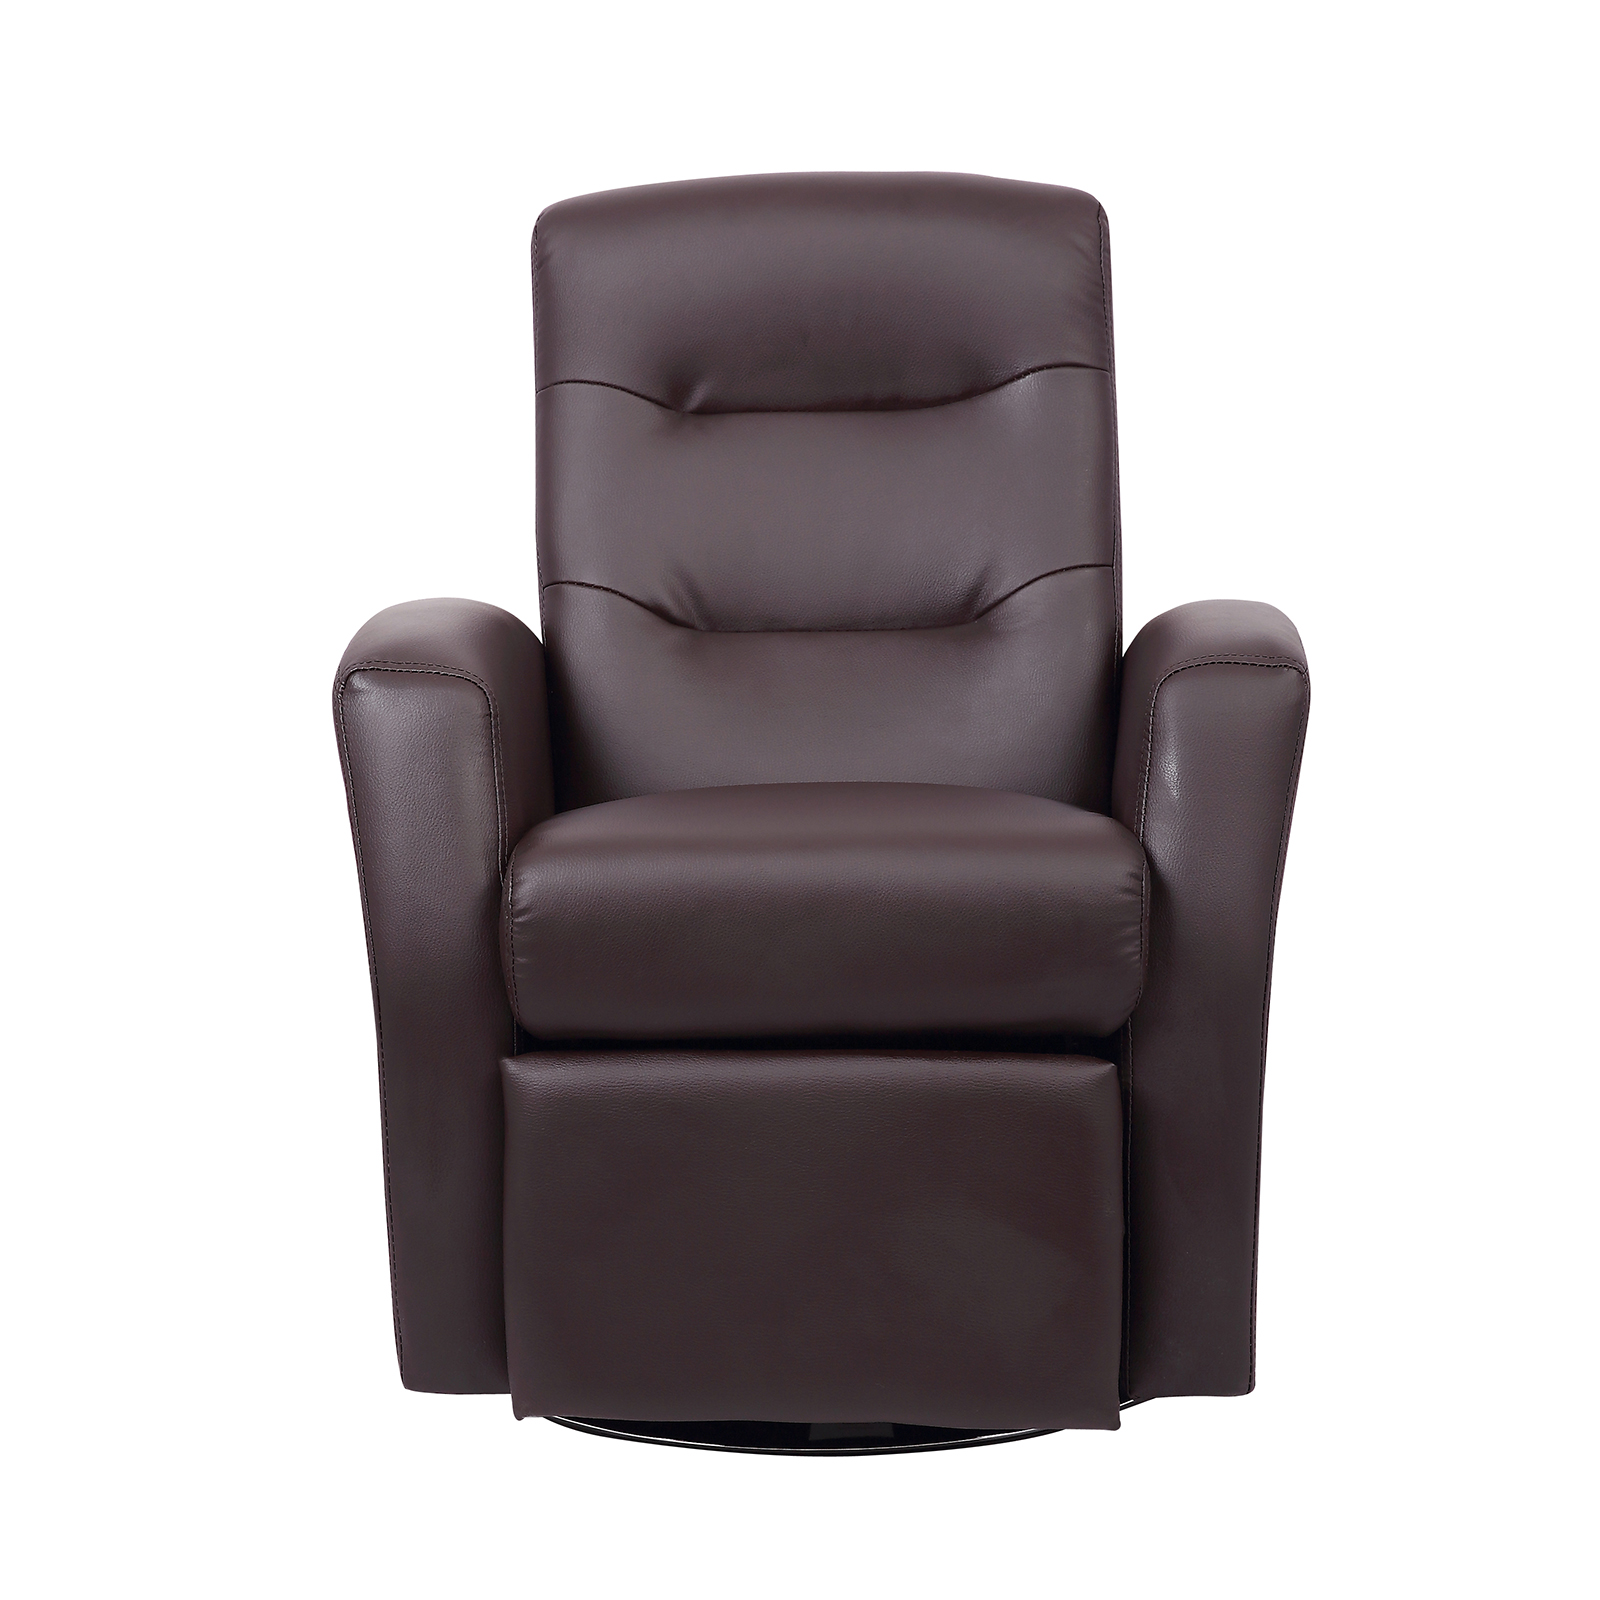 Kids Reclining Swivel Chair Living Room Furniture Padded